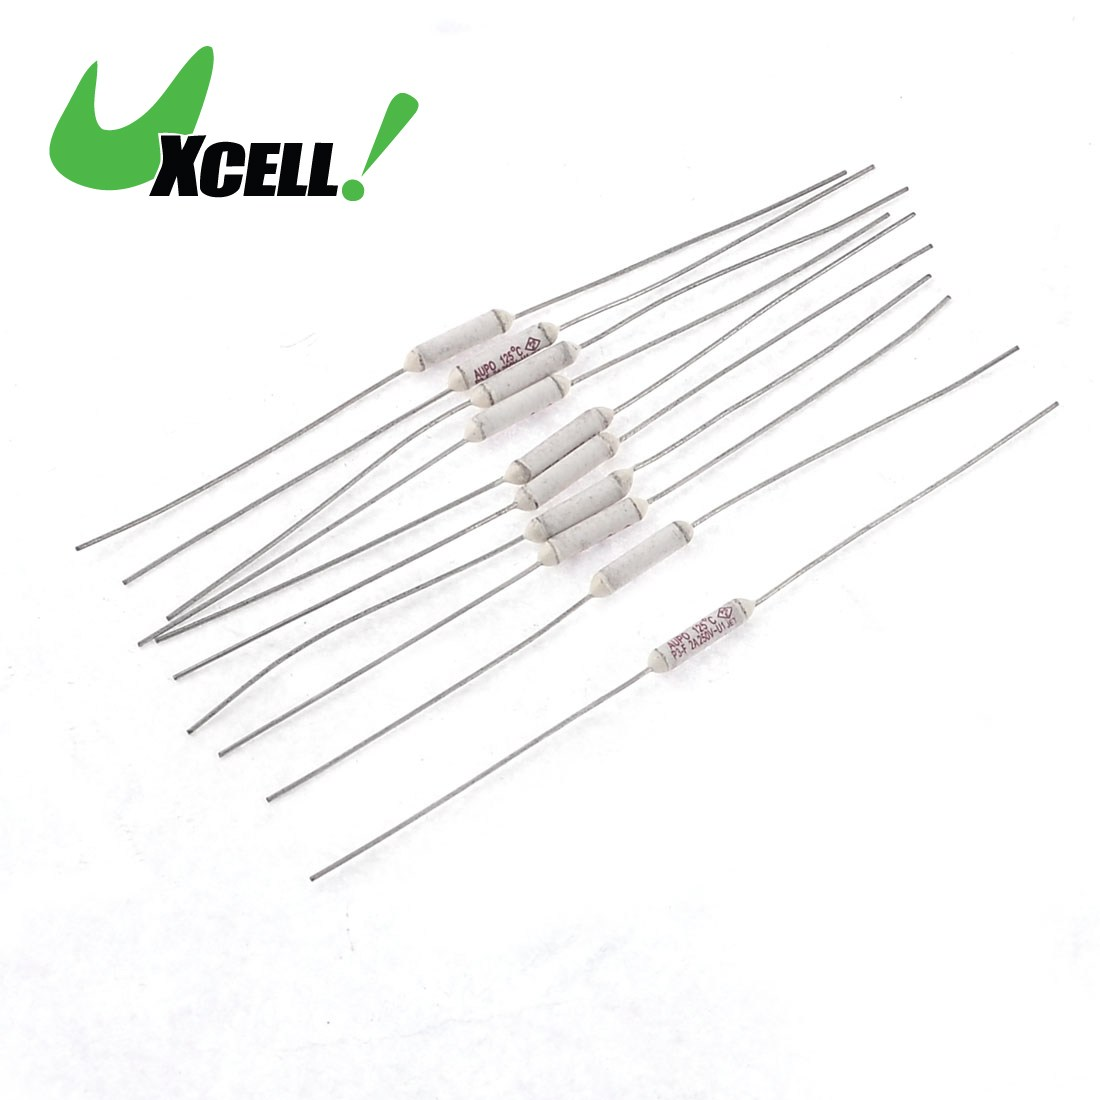 UXCELL Hot Sale 10Pcs/lot 250V 2A 125 Celsius Cylinder Circuit Cut Off Temperature 12x2.5mm Thermal Fuse 85mm Length Quality 20 pcs ry series metal 192 celsius 250v 10a cutoffs thermal fuse